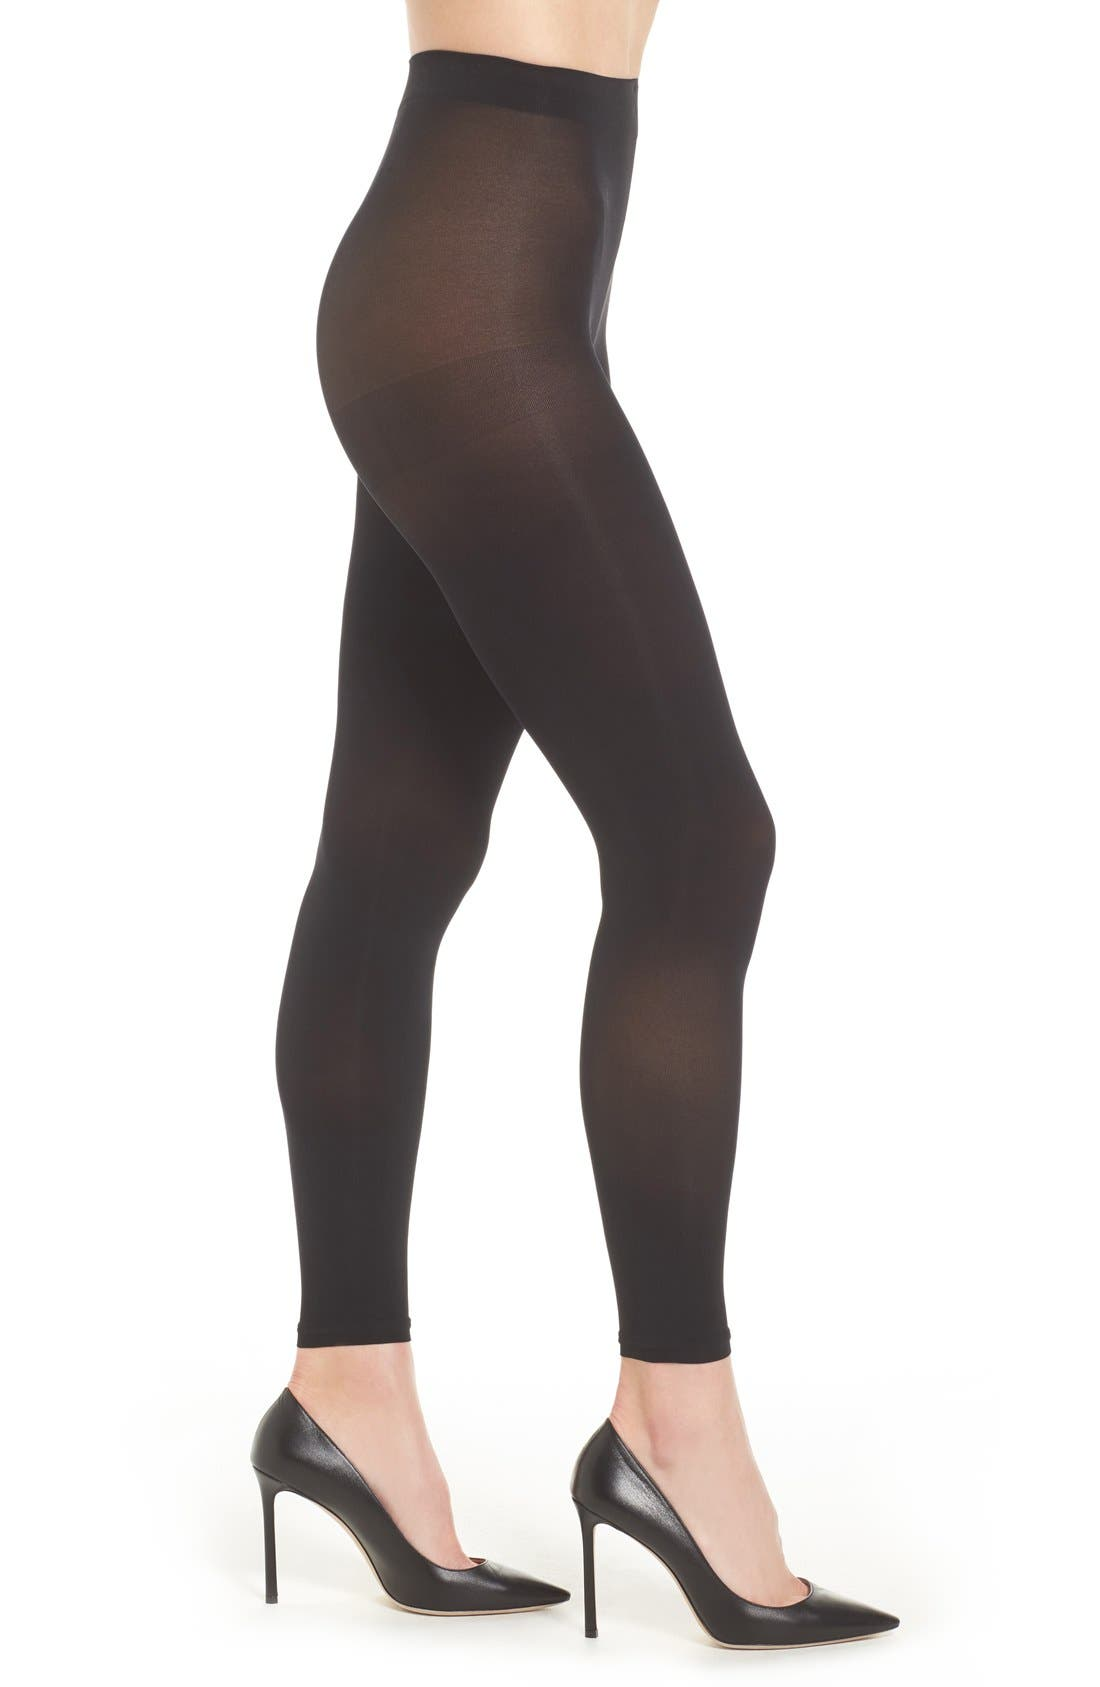 Alternate Image 1 Selected - Nordstrom 'Everyday' Footless Tights (2 for $24)